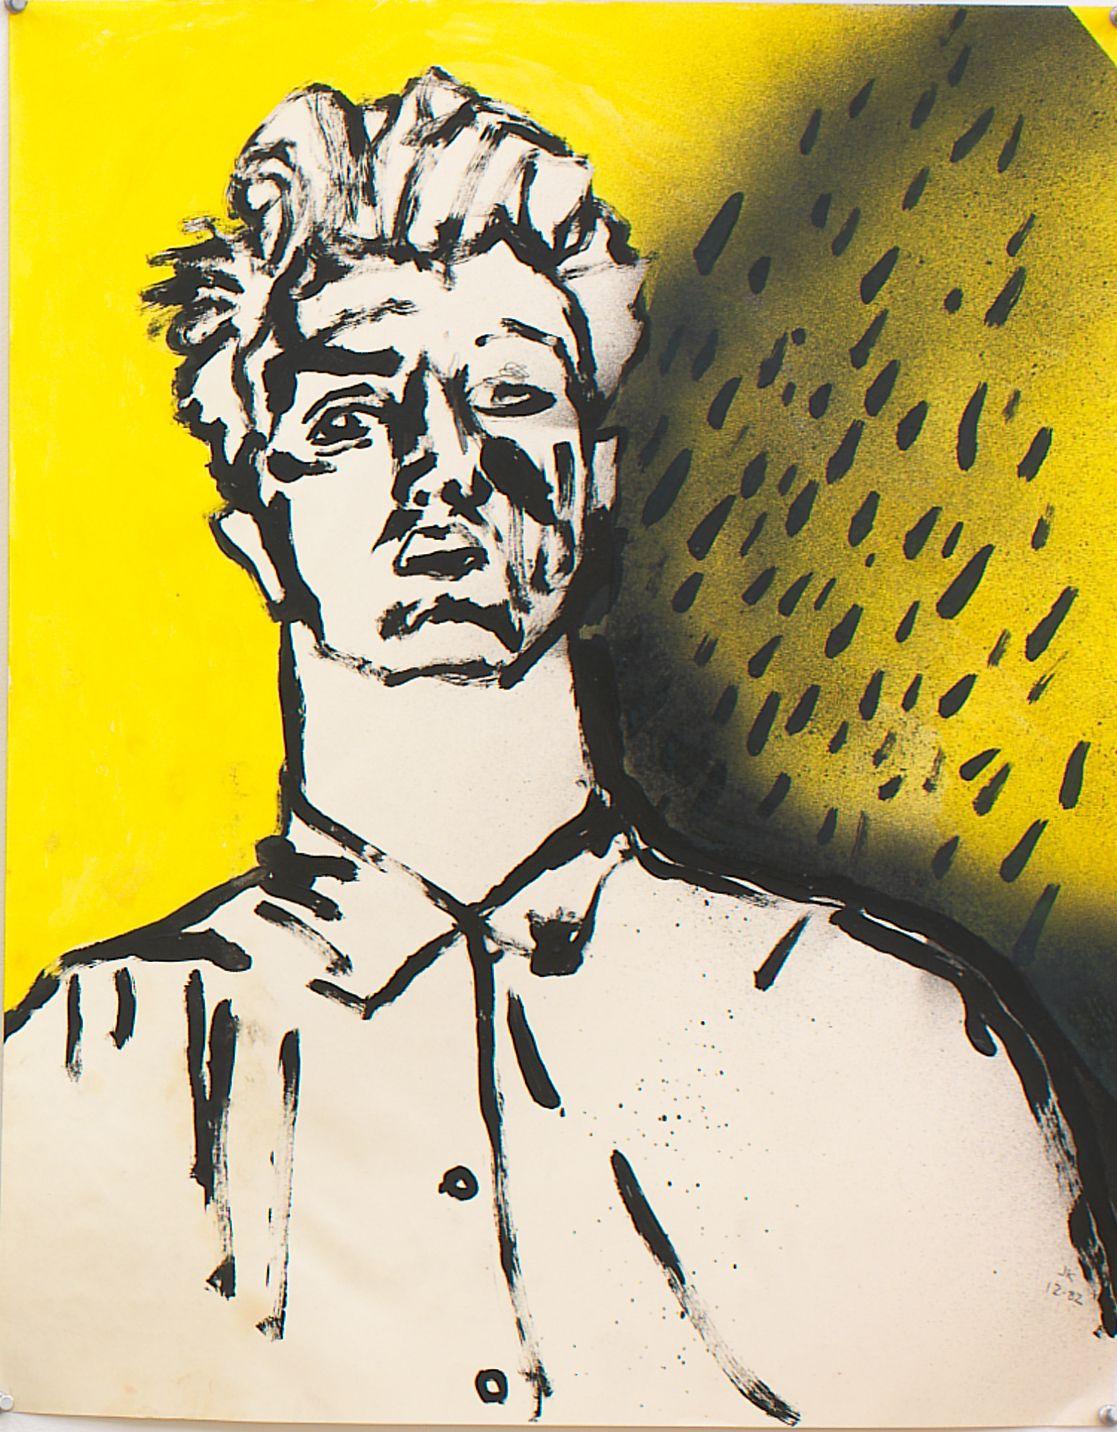 Self Portrait III, 1982, Spray paint, acrylic and ink on paper